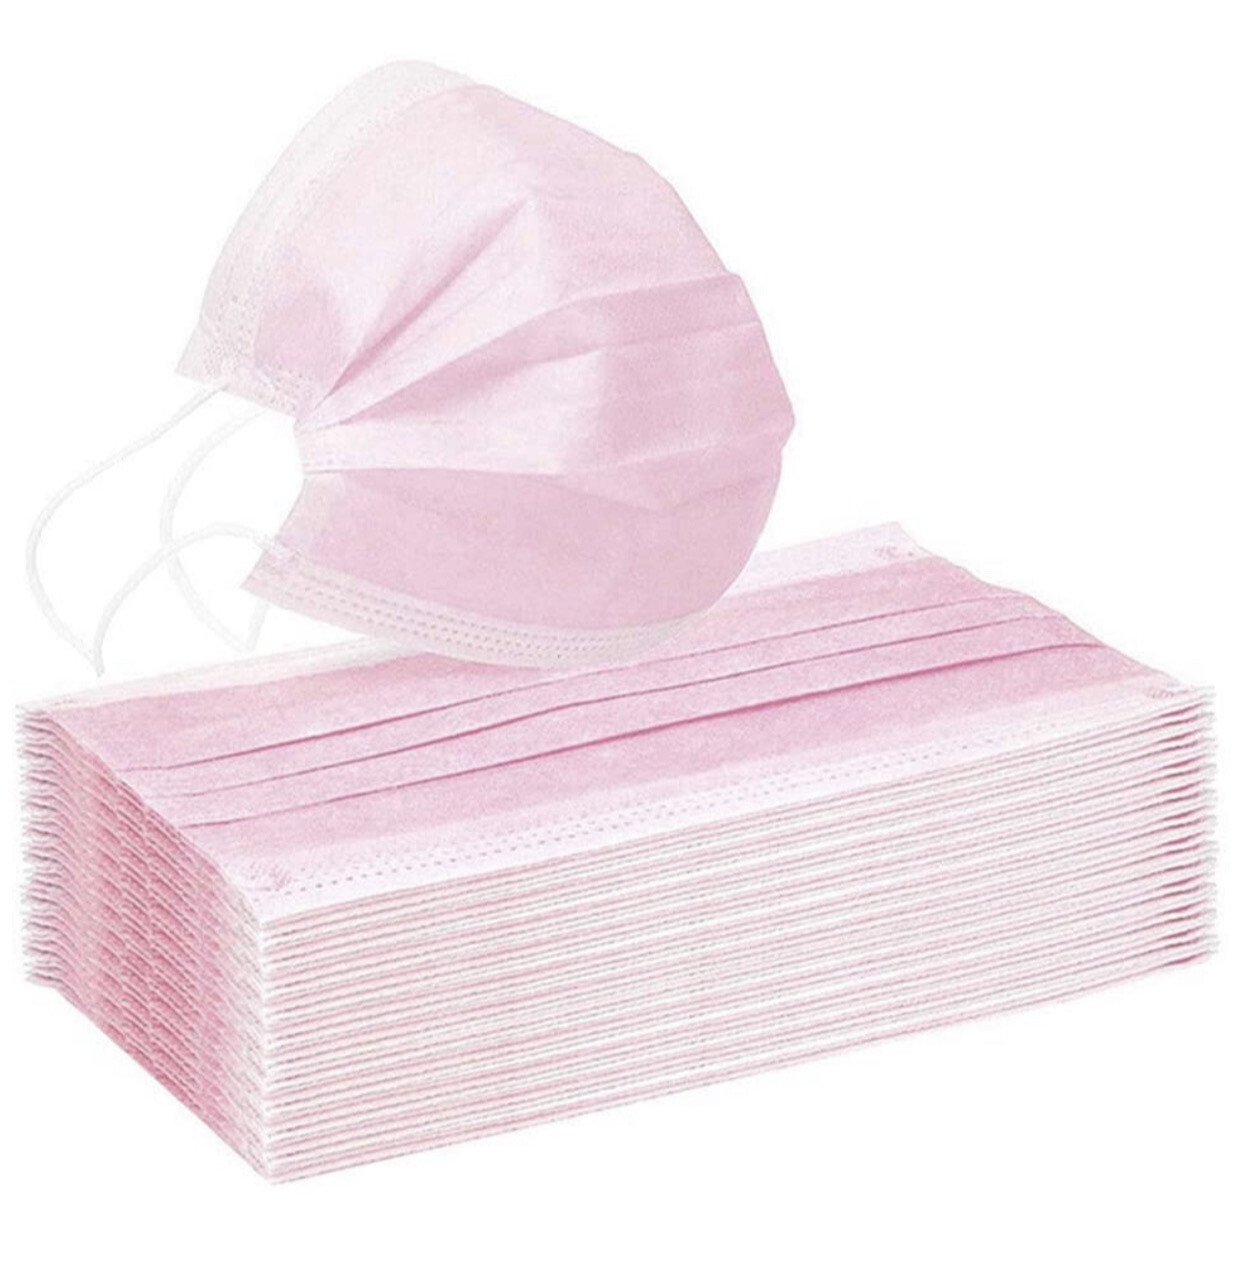 Disposable Face Mask - PINK (pk-50)